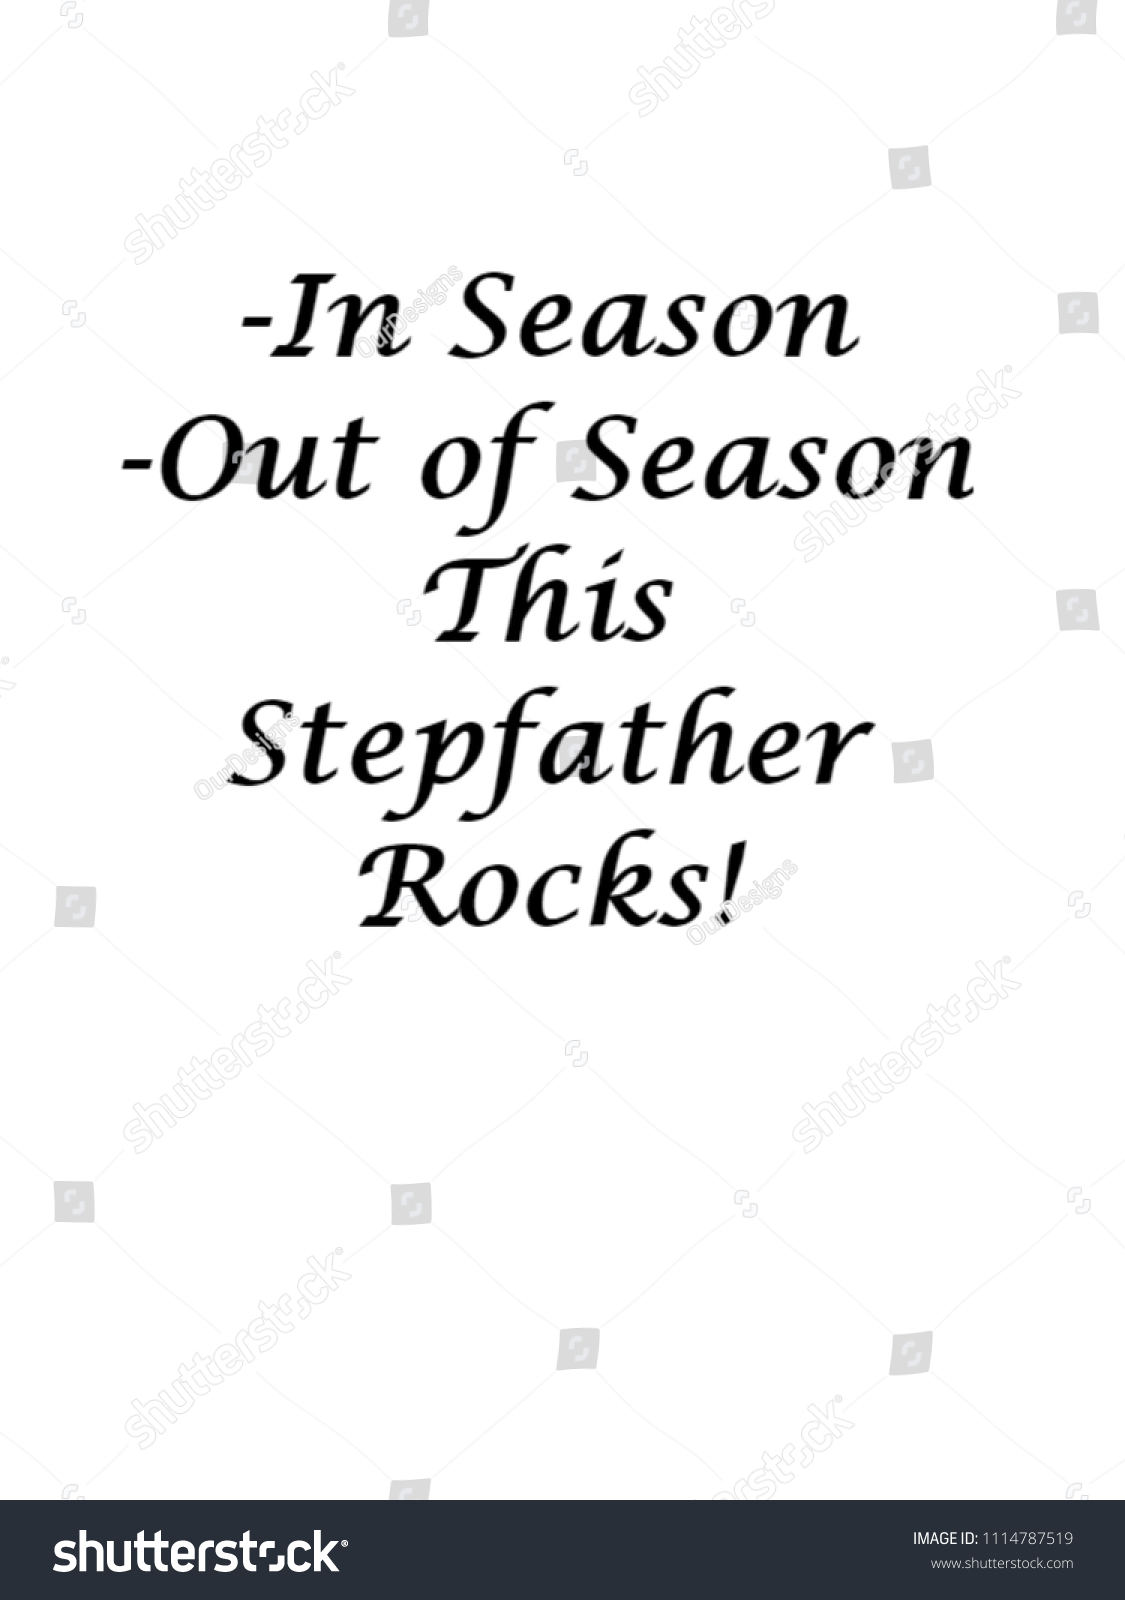 stepdad gifts from child this stepfather rocks present idea for christmas thanksgiving customize or